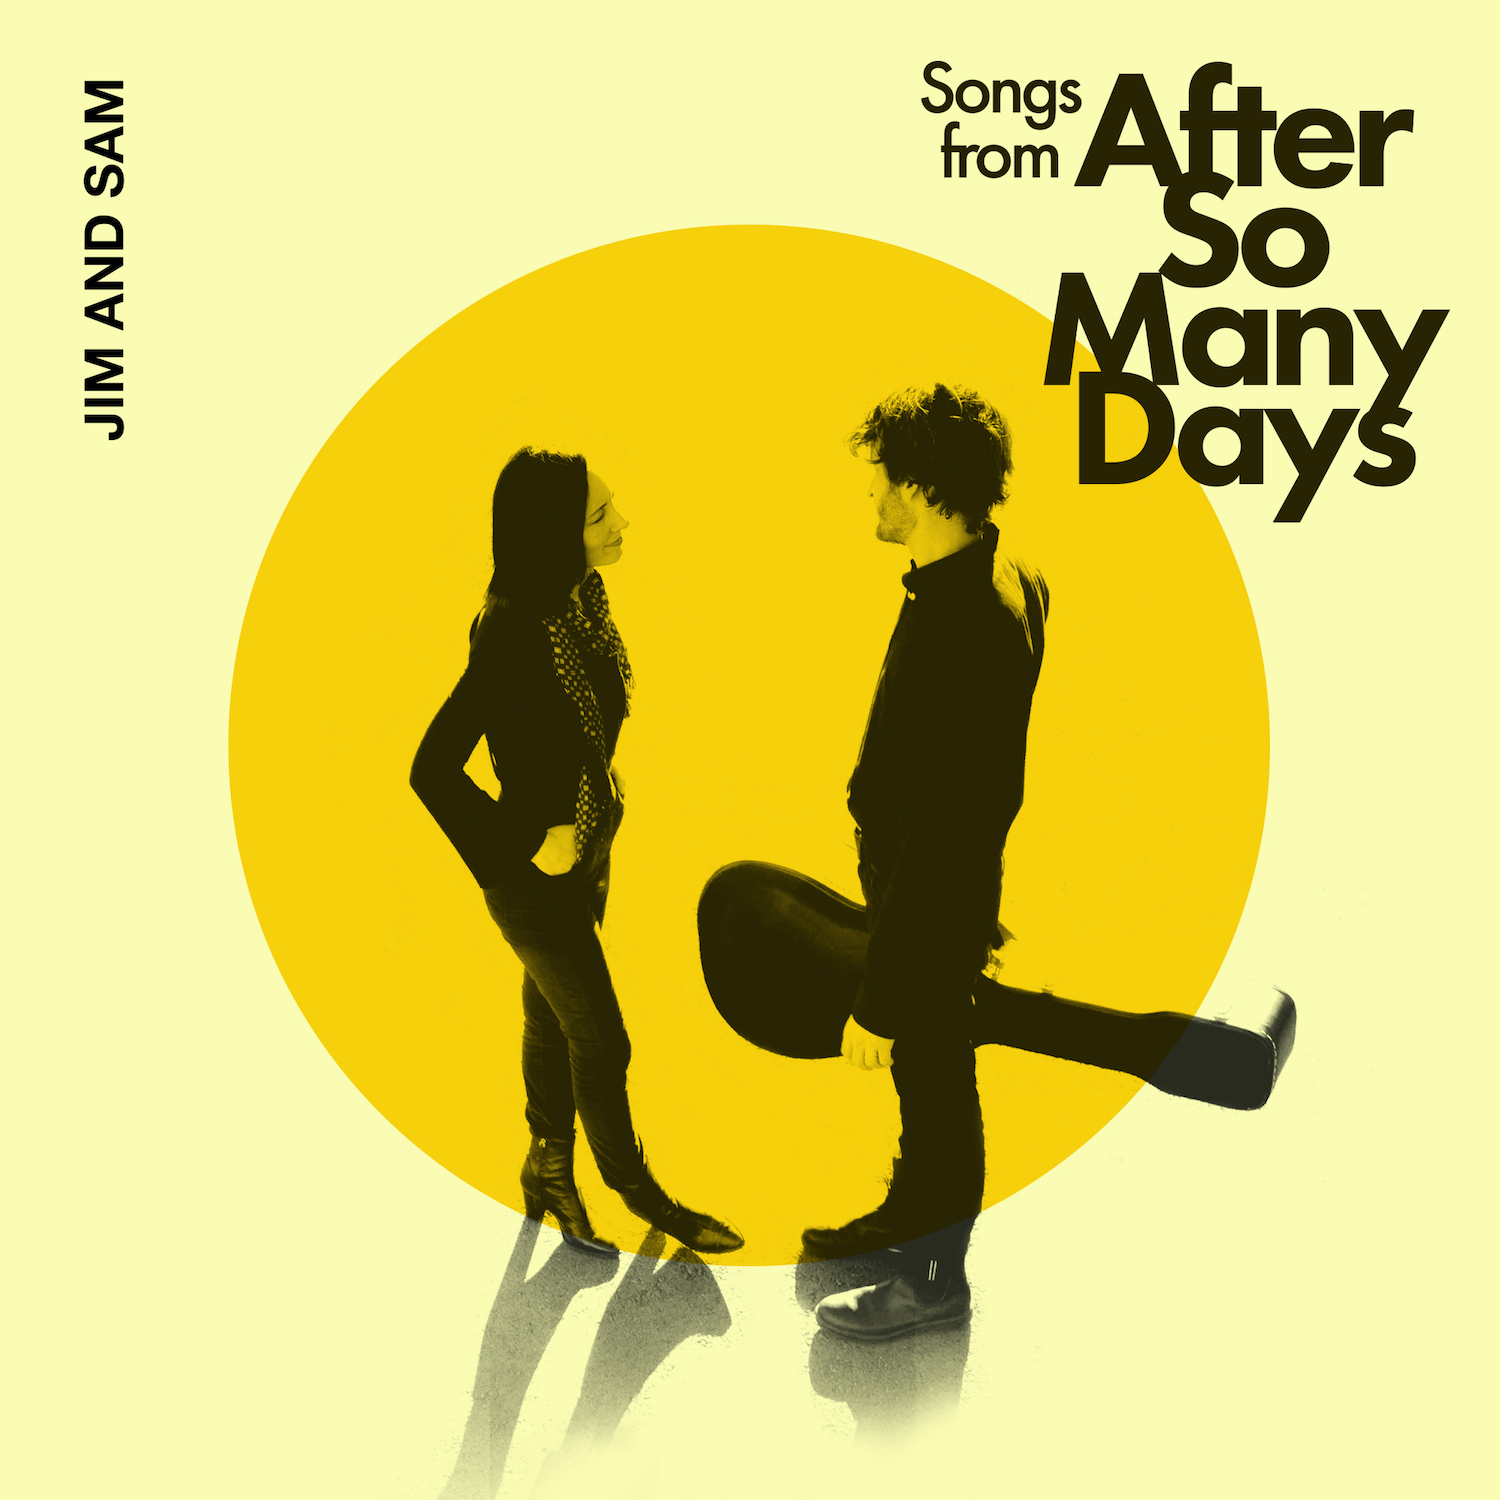 Songs from After So Many Days - Jim and Sam